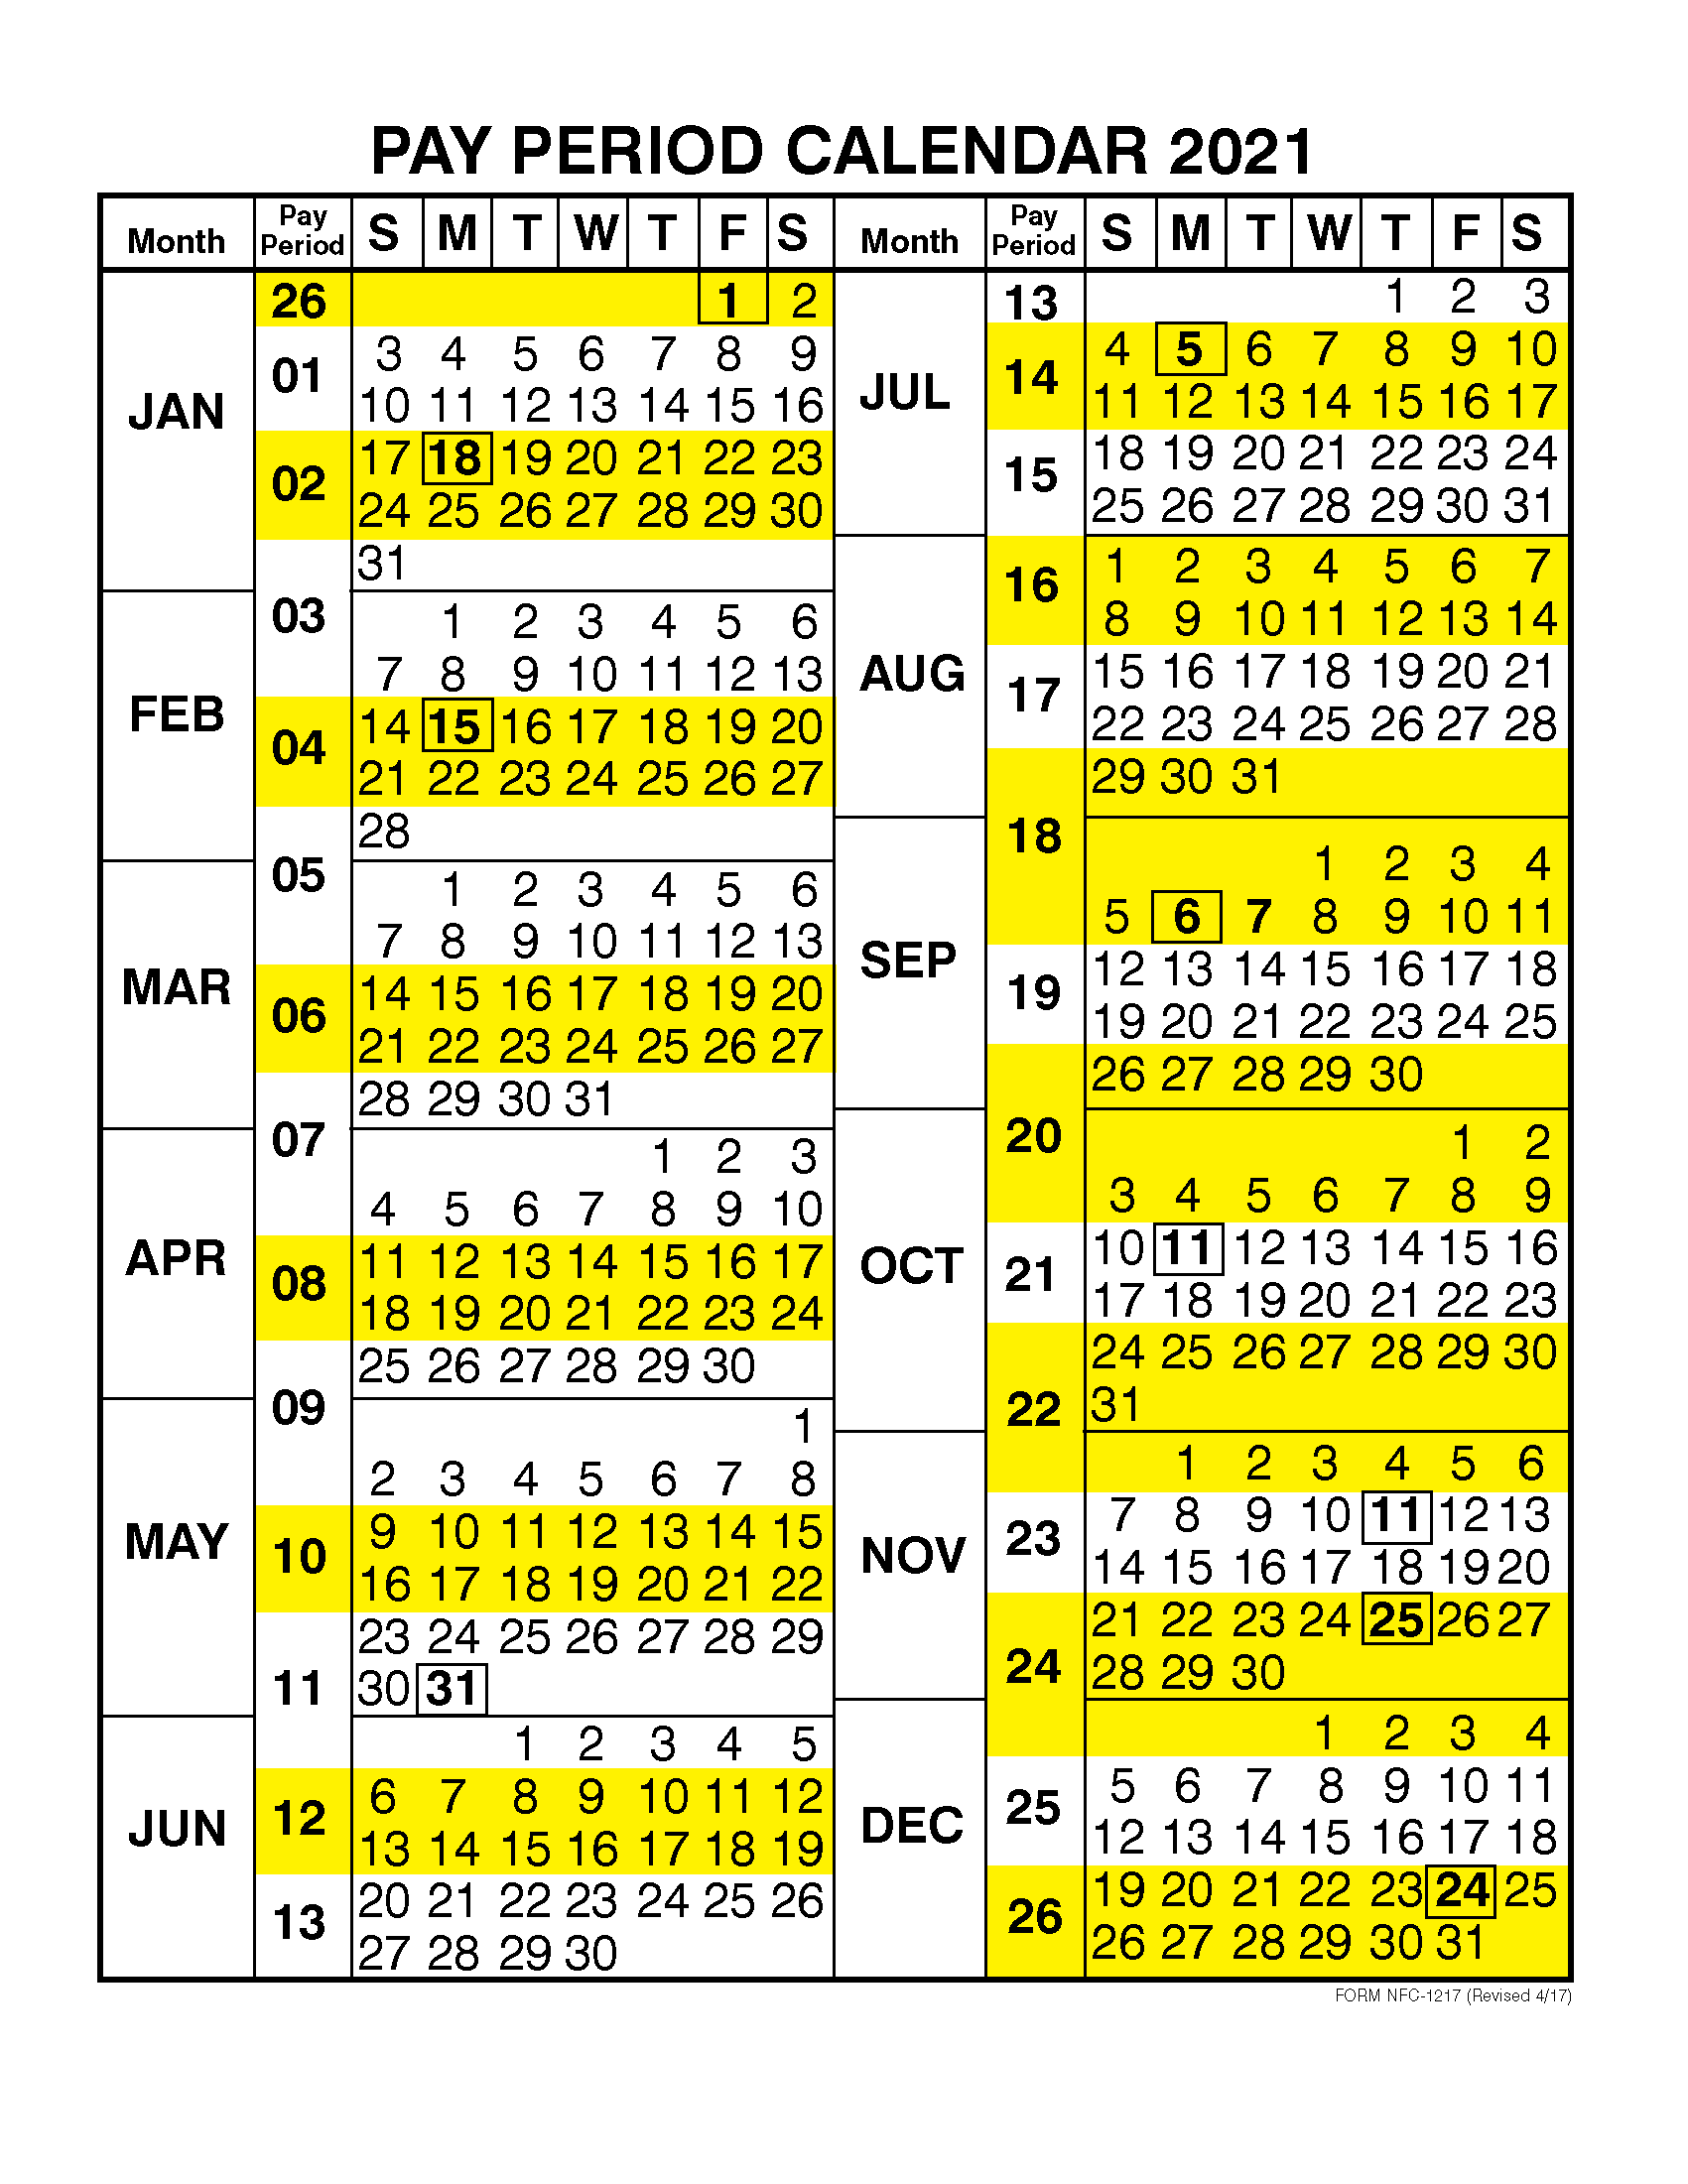 Pay Period Calendar 2021 By Calendar Year | Free Printable with regard to Federal Government Pay Calendar 2020 Opm